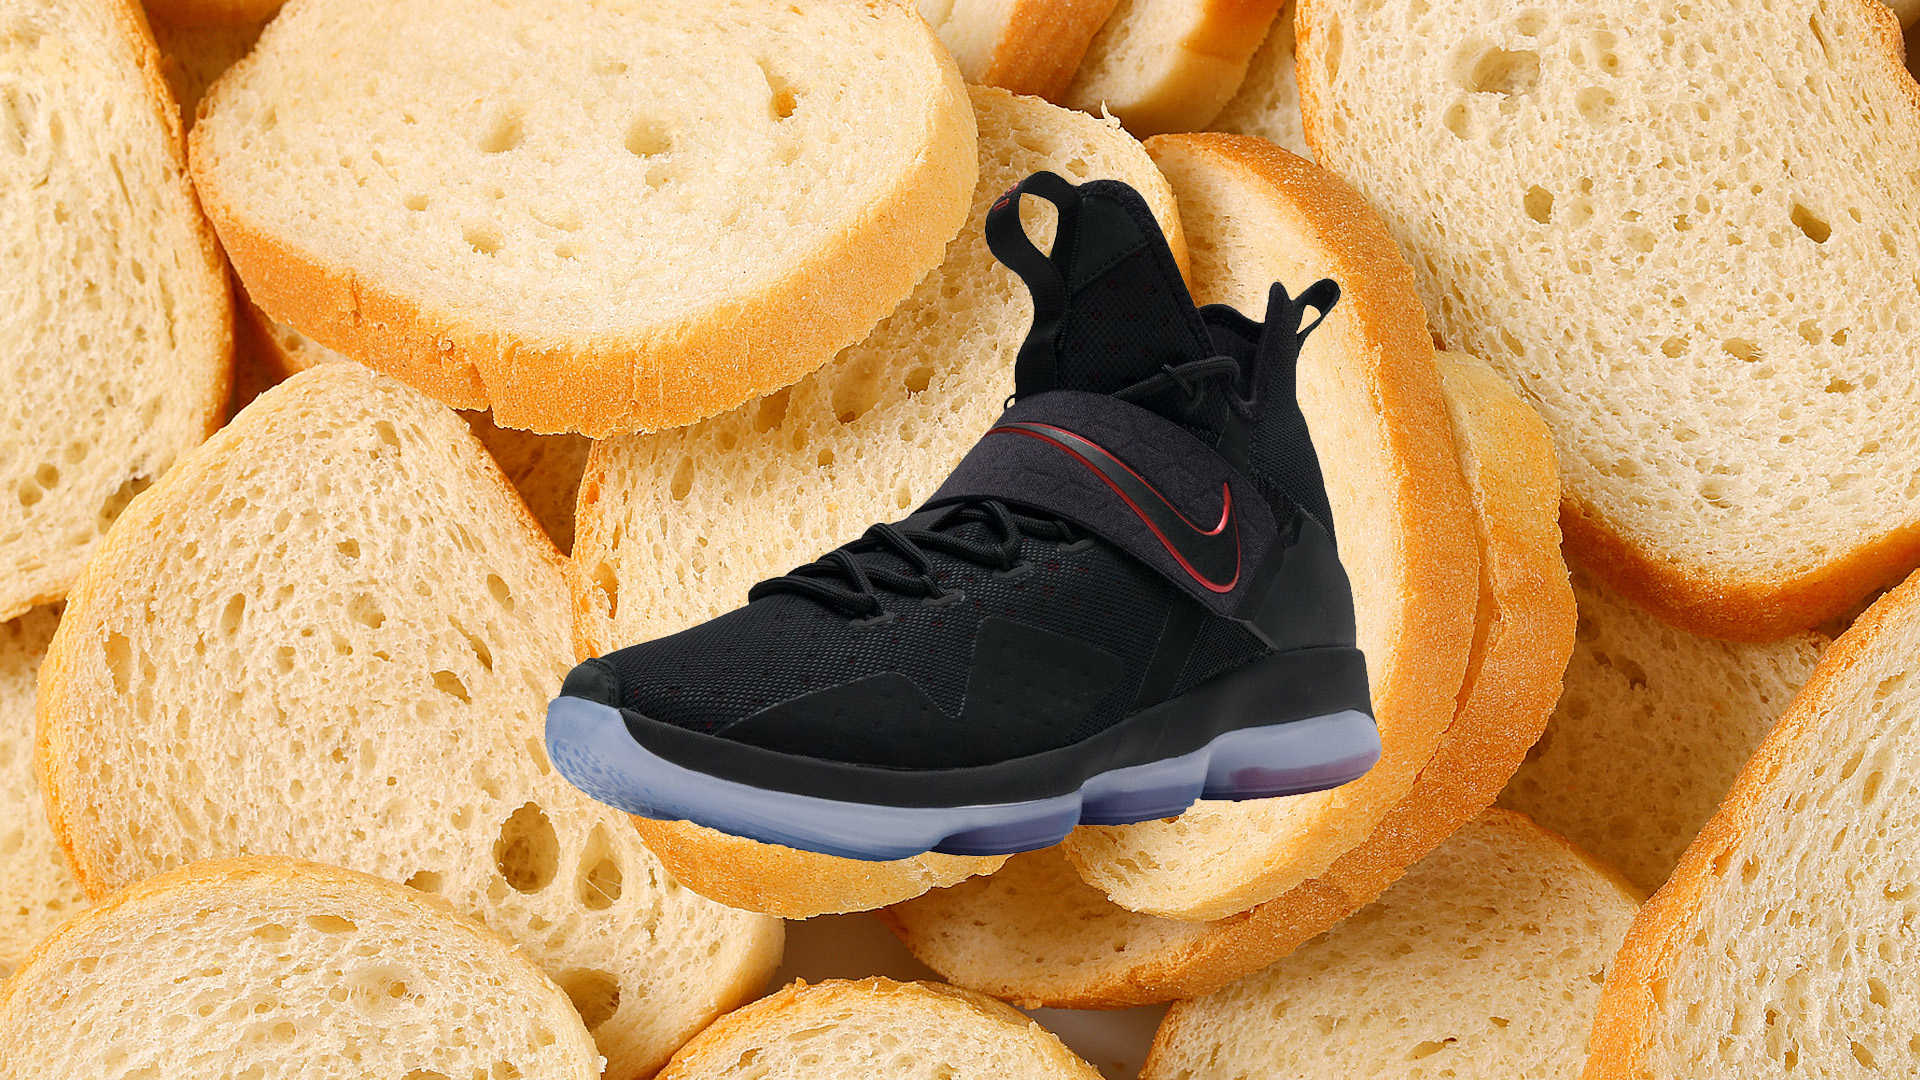 new style ceaad 41ca2 The Nike LeBron 14 in Bred is Available Now - WearTesters